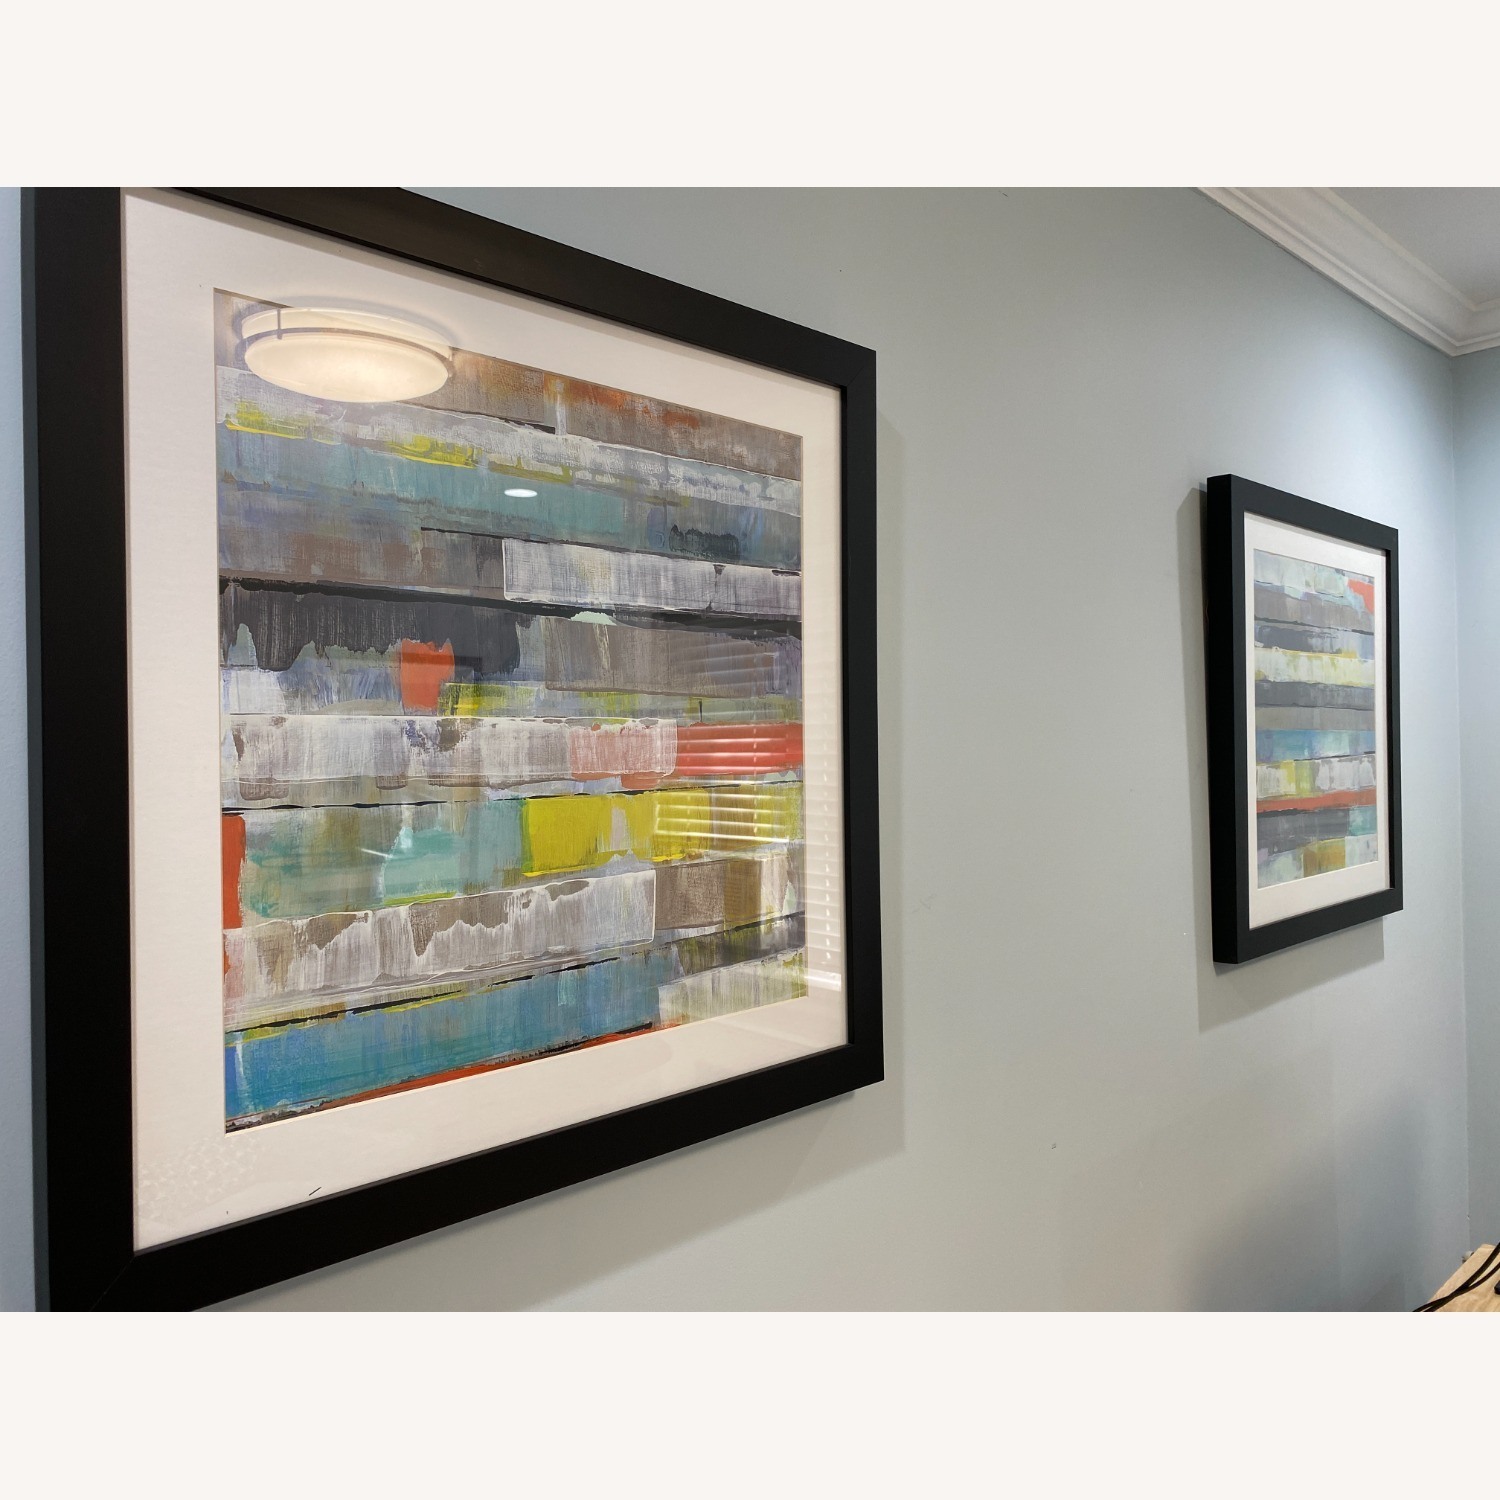 Abstract Z-Gallerie Wall Art: Metro 1 & 2 - image-2